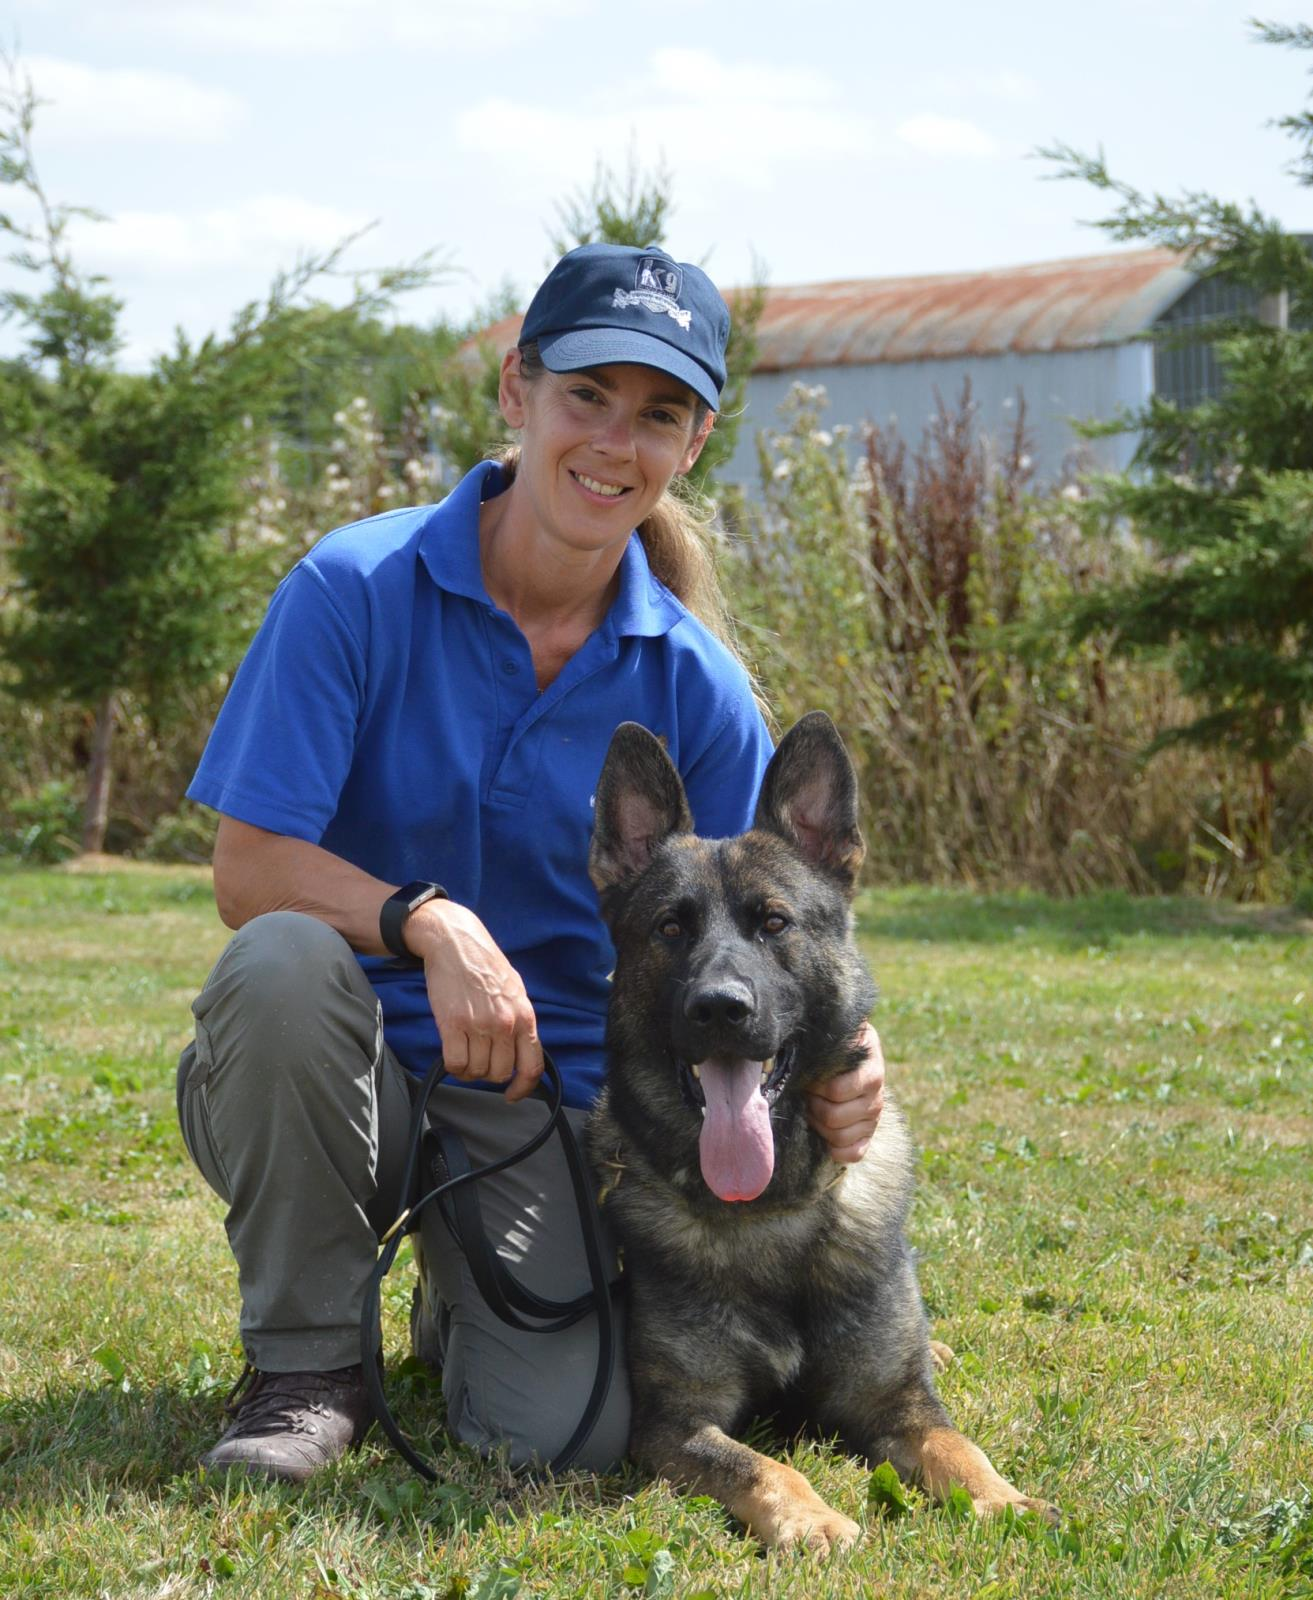 Protection Dog Trainer at K9 Protecter - Sian Beard